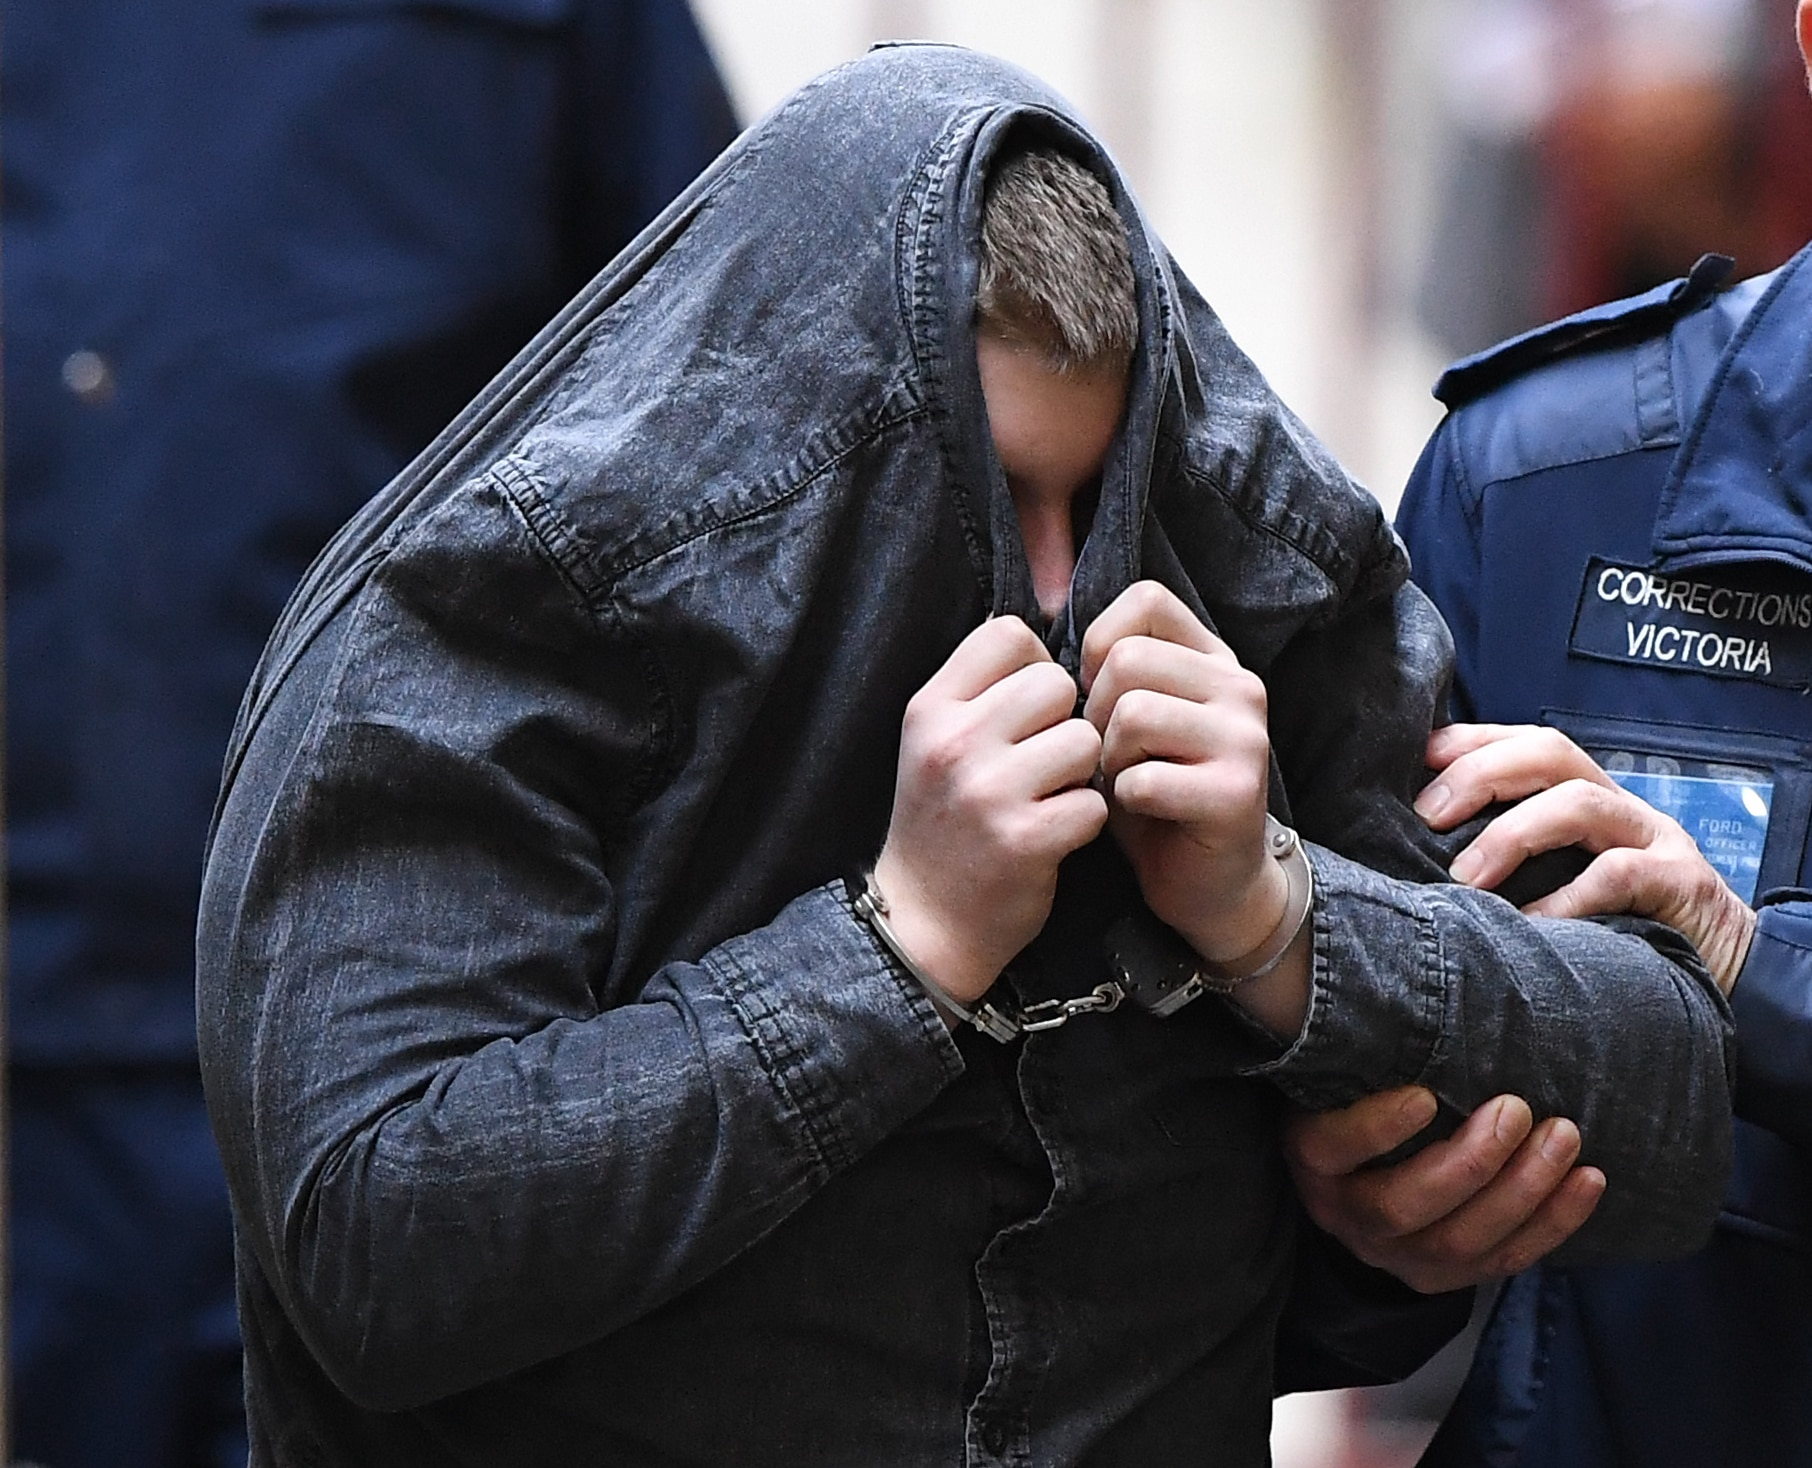 Jaymes Todd is led into the Supreme Court of Victoria in Melbourne, Monday, September 2, 2019. Jaymes Todd is set to be sentenced for the rape and murder of aspiring comedian Eurydice Dixon in a Melbourne park. (AAP Image/Julian Smith) NO ARCHIVING